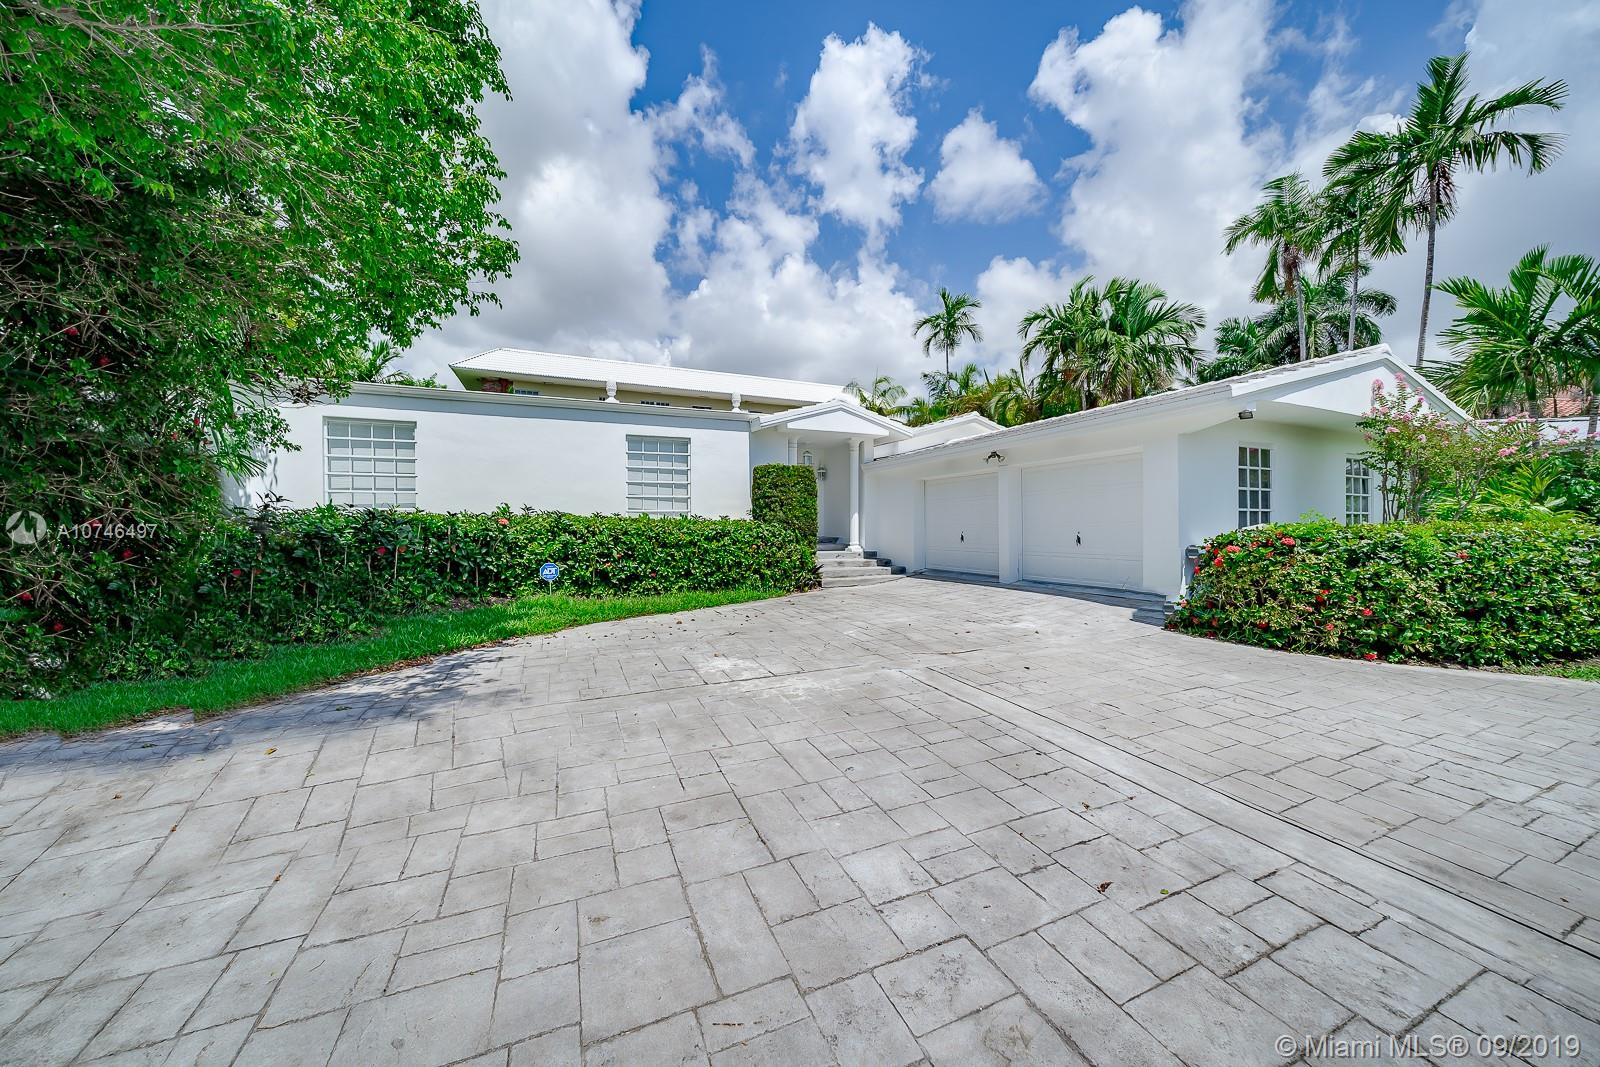 Location! This beautiful and newly renovated open concept home is 2372 sqft with 3 bedrooms and 3 baths. It features a covered pool and is located within the prestigious Harbor Inlet just across the bridge from the Ft Lauderdale convention center, subdivision located across the street from massive 165 million dollar acquisition and renovation of Pier Sixty-Six hotel and marina, minutes from Las Olas by car and a short 5-7 minute walk to a private portion of Ft Lauderdale beach adjacent to The Hotel Lago Mar Beach Resort.